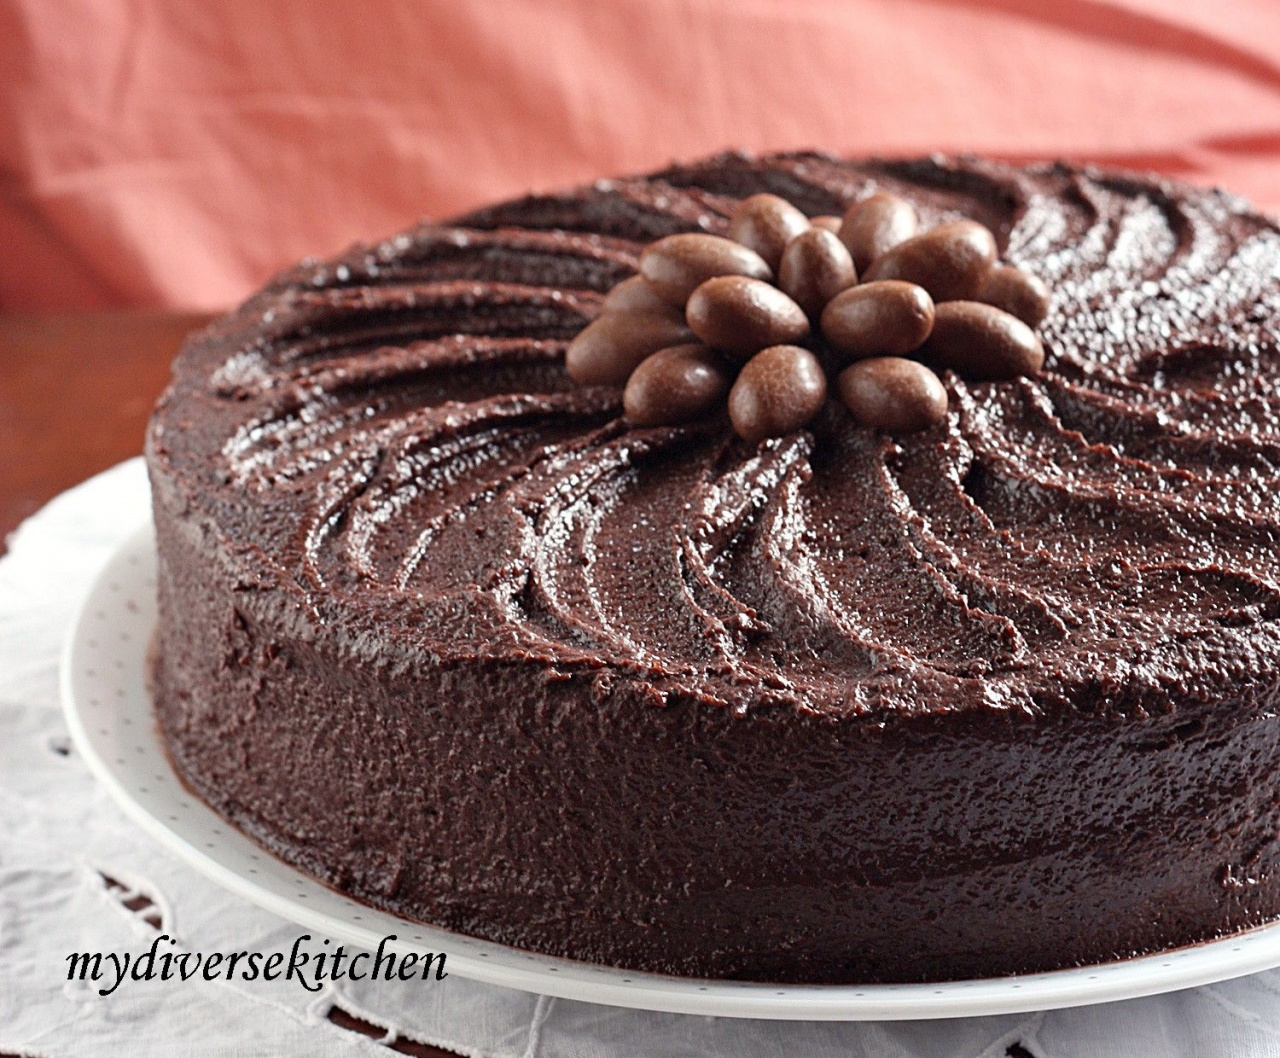 Images Of Chocolate Cake : Chocolate Cake Wallpapers